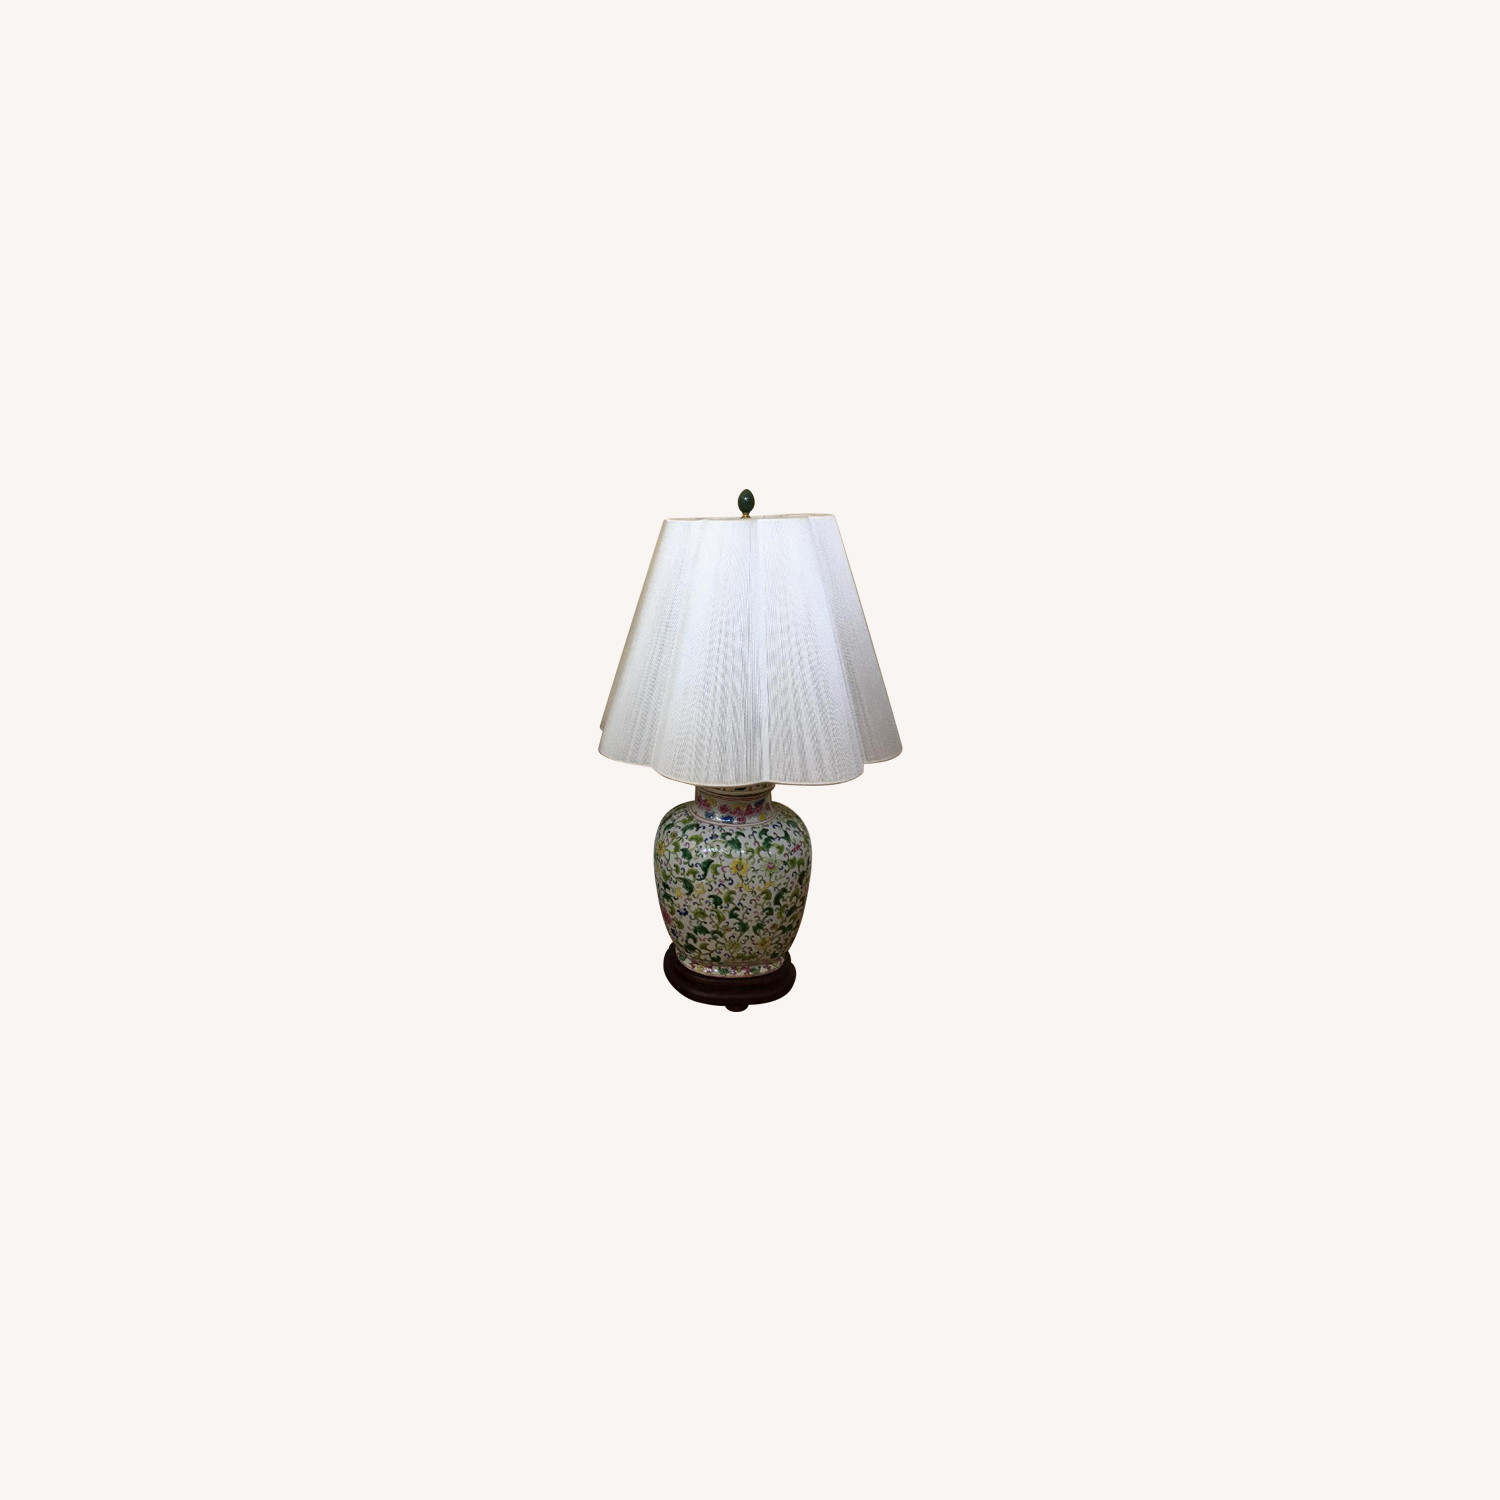 Green Floral Print Ceramic Lamps w/ Shades